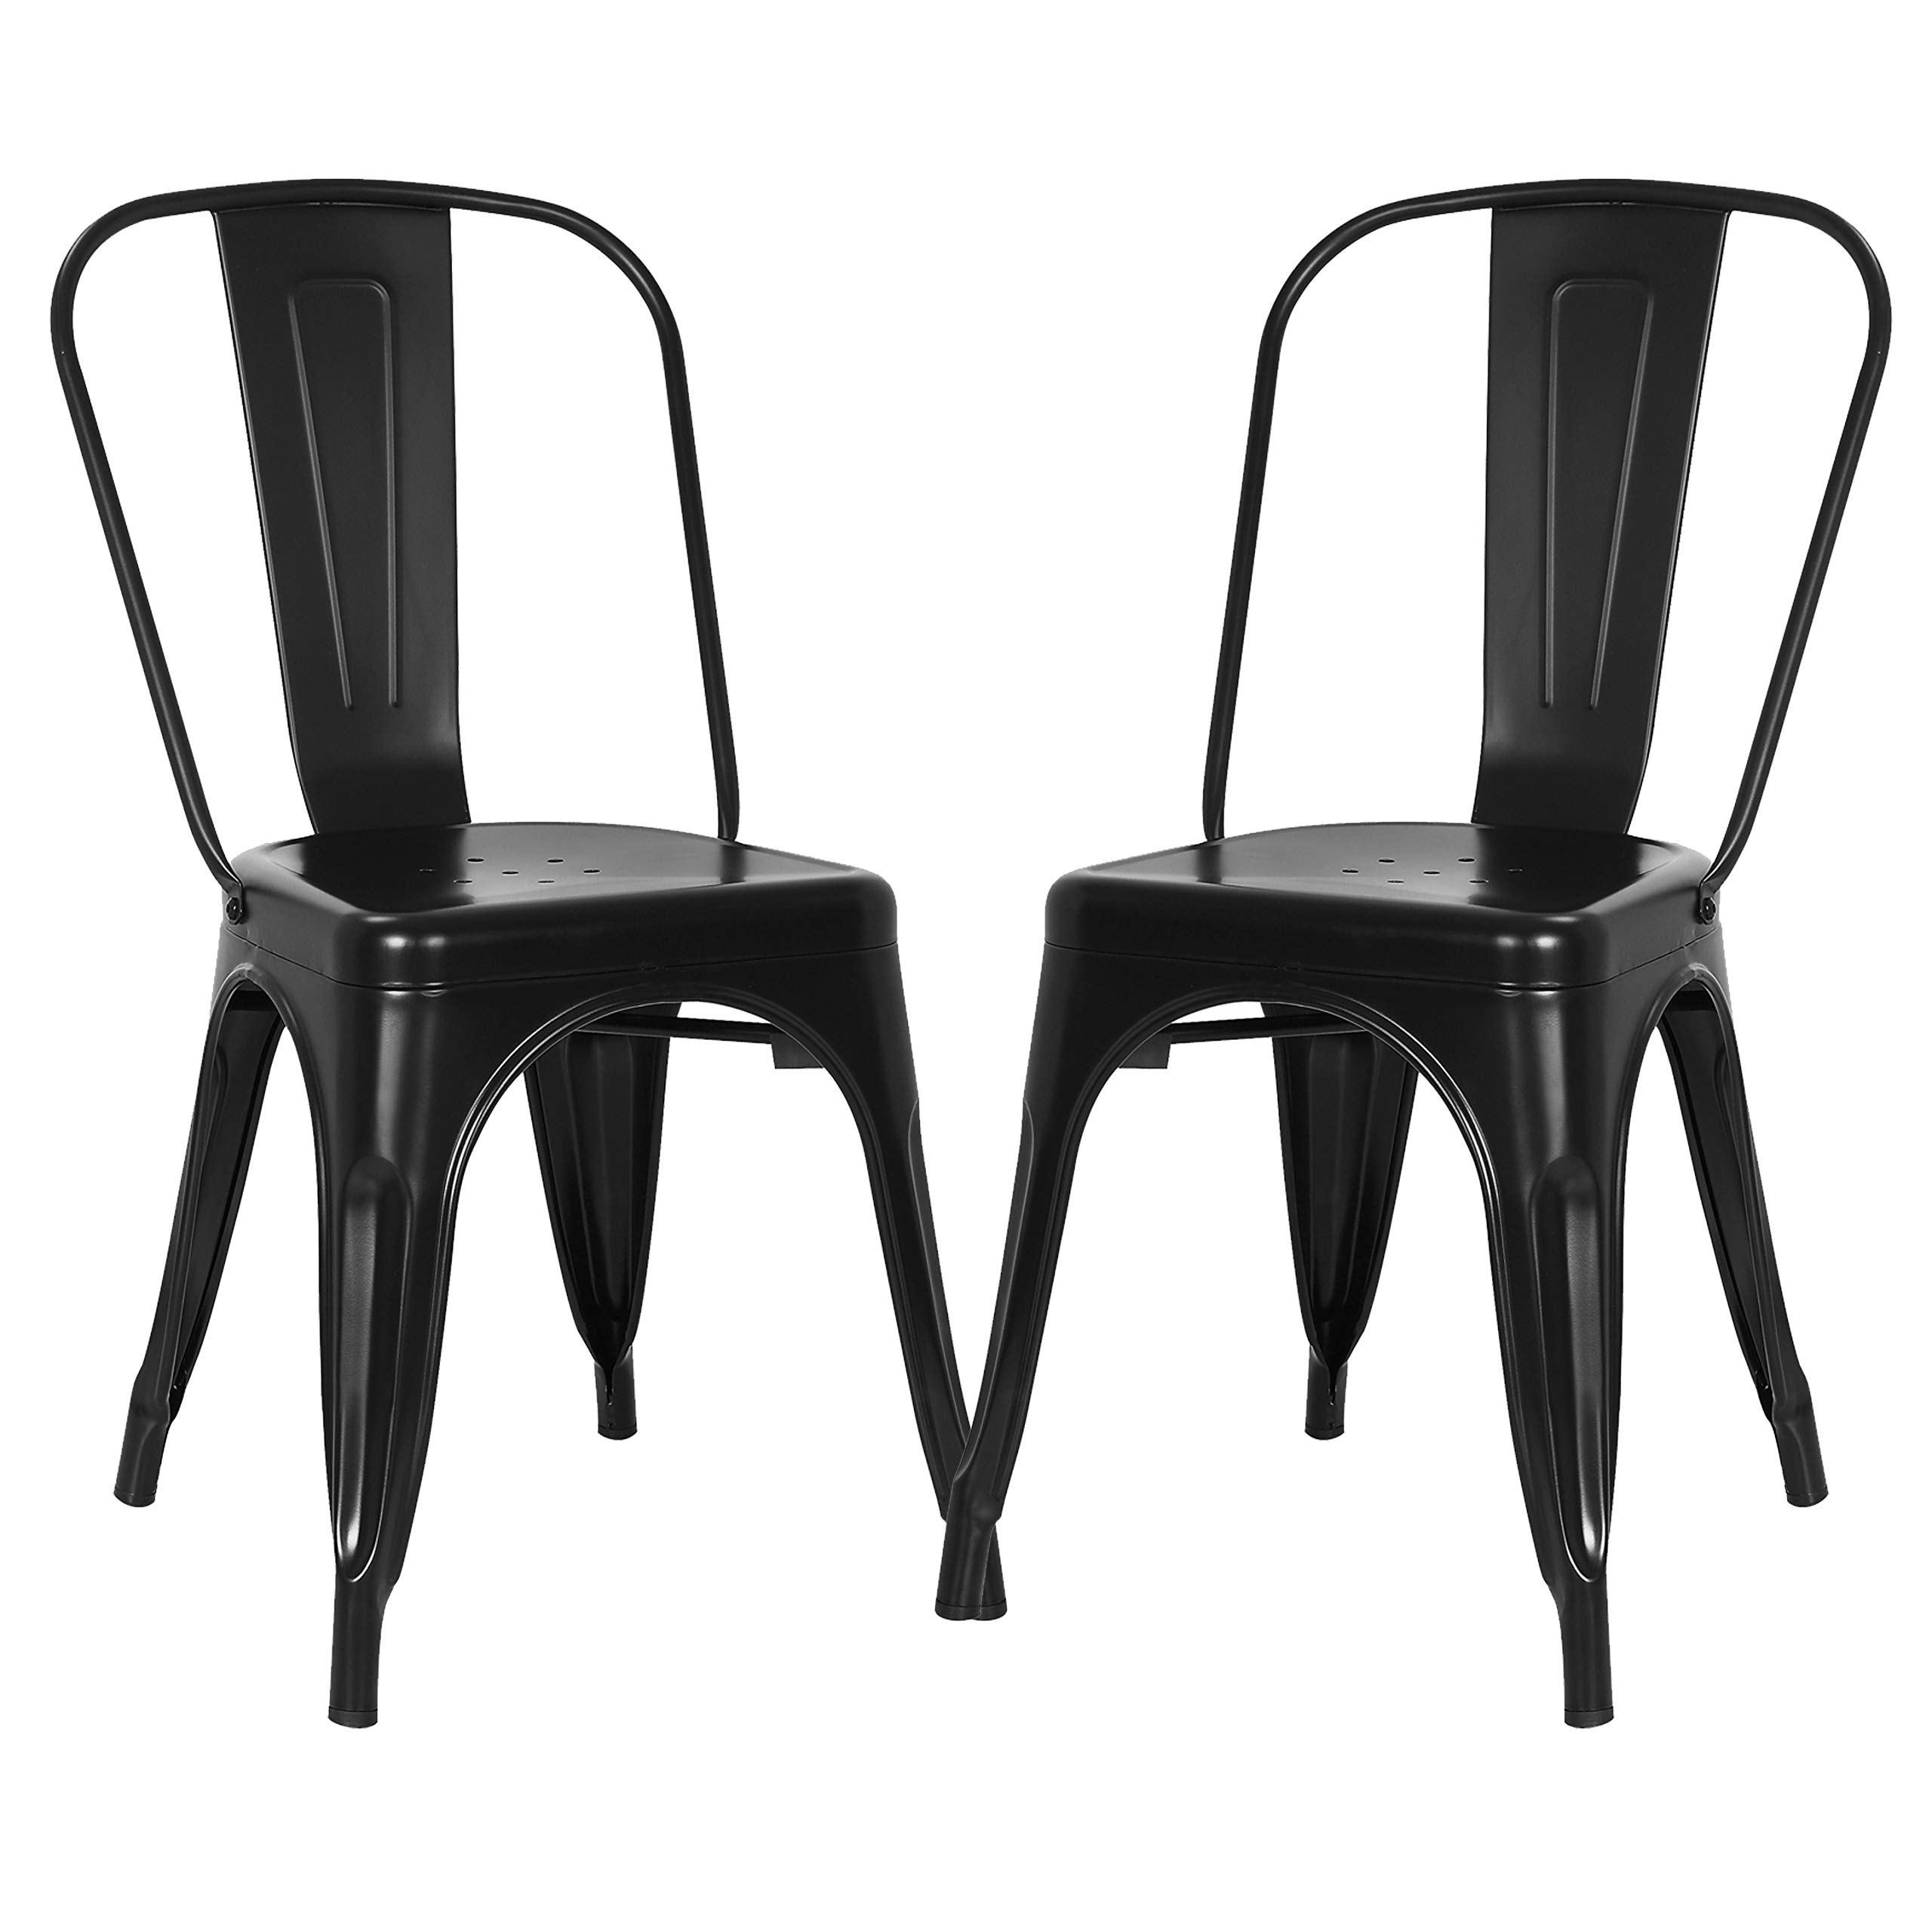 Poly and Bark Trattoria Kitchen and Dining Metal Side Chair in Black (Set of 2) by POLY & BARK